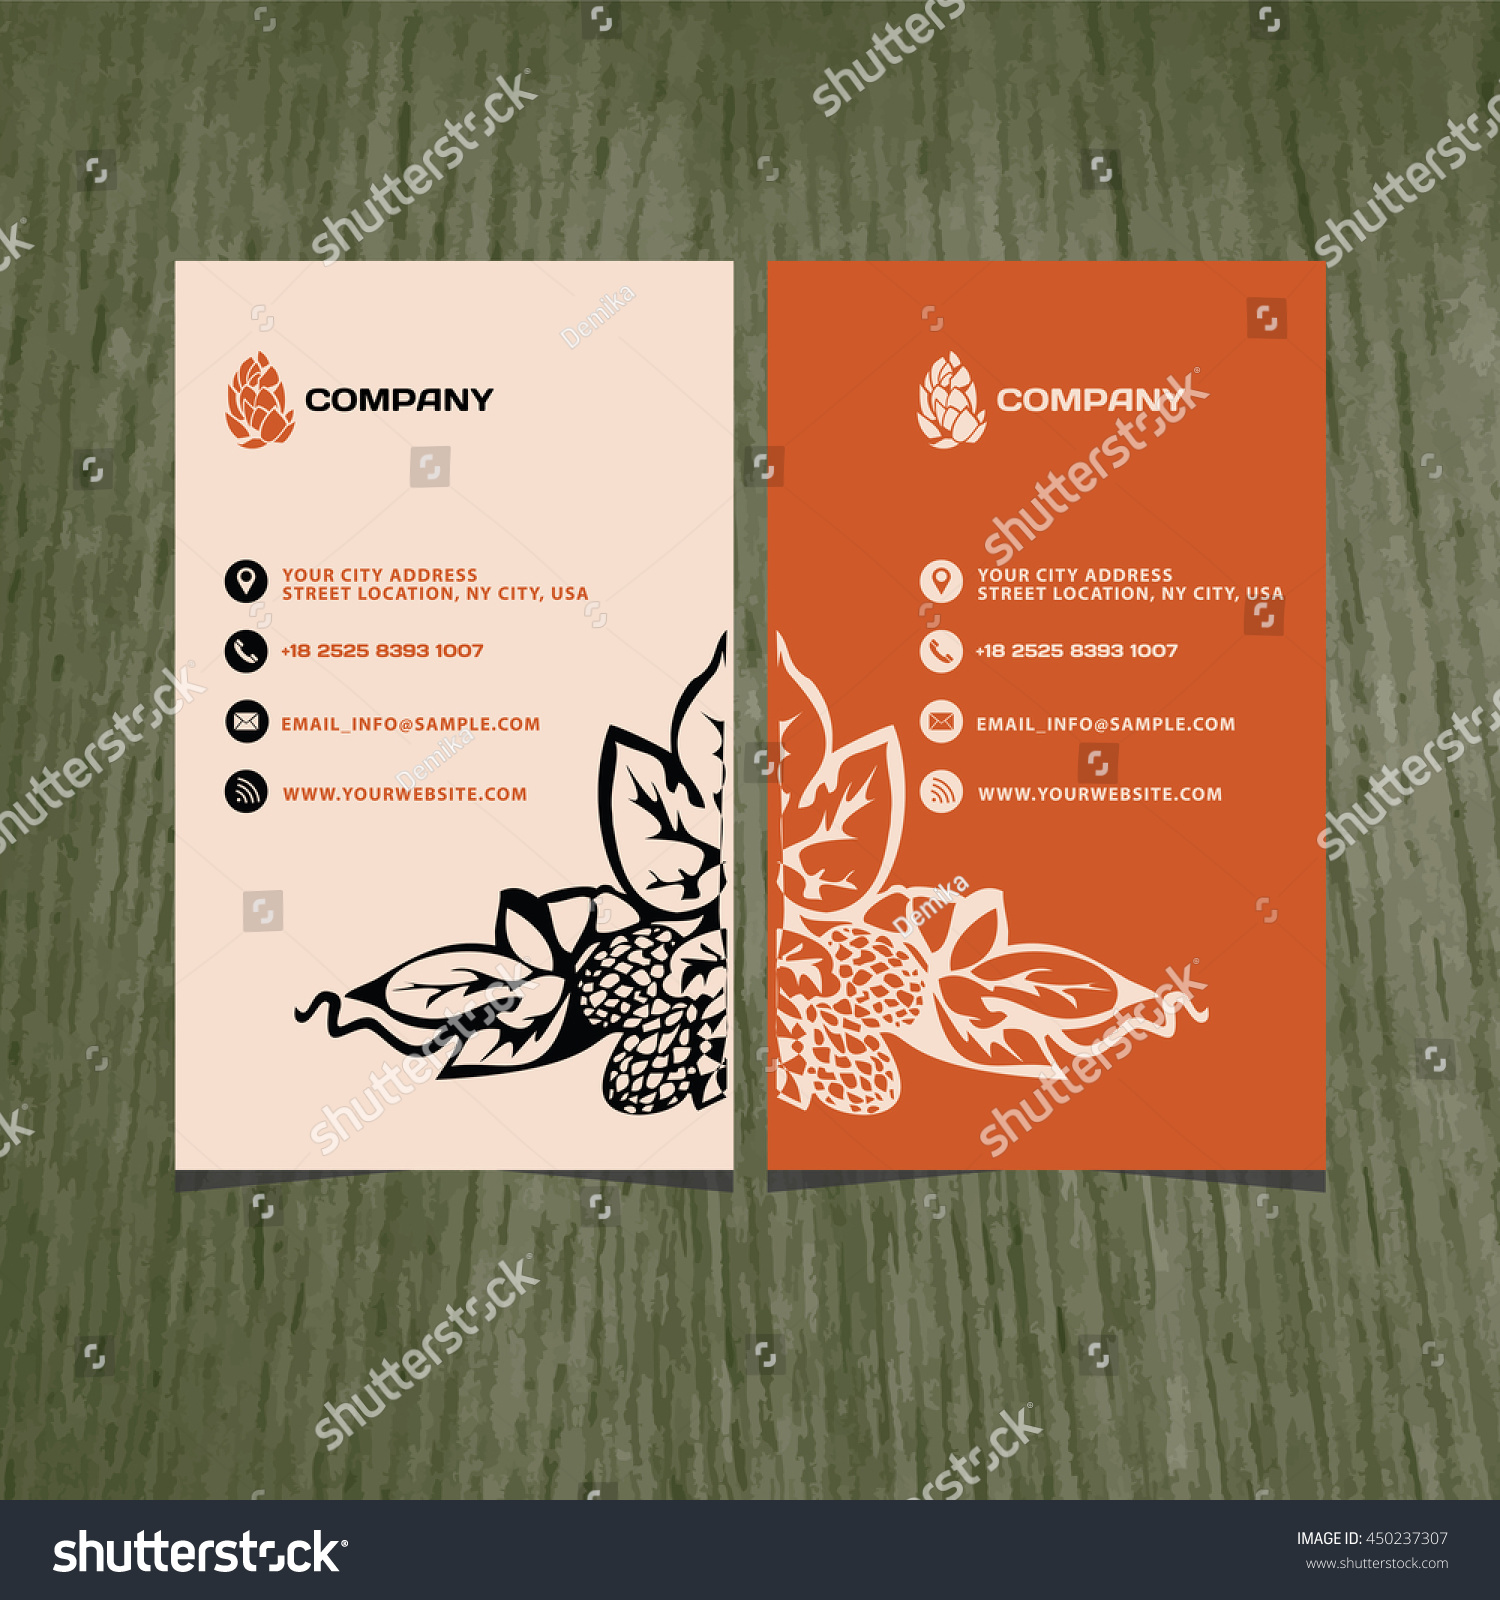 Branding Brand Book Business Card Vector Stock Vector HD (Royalty ...